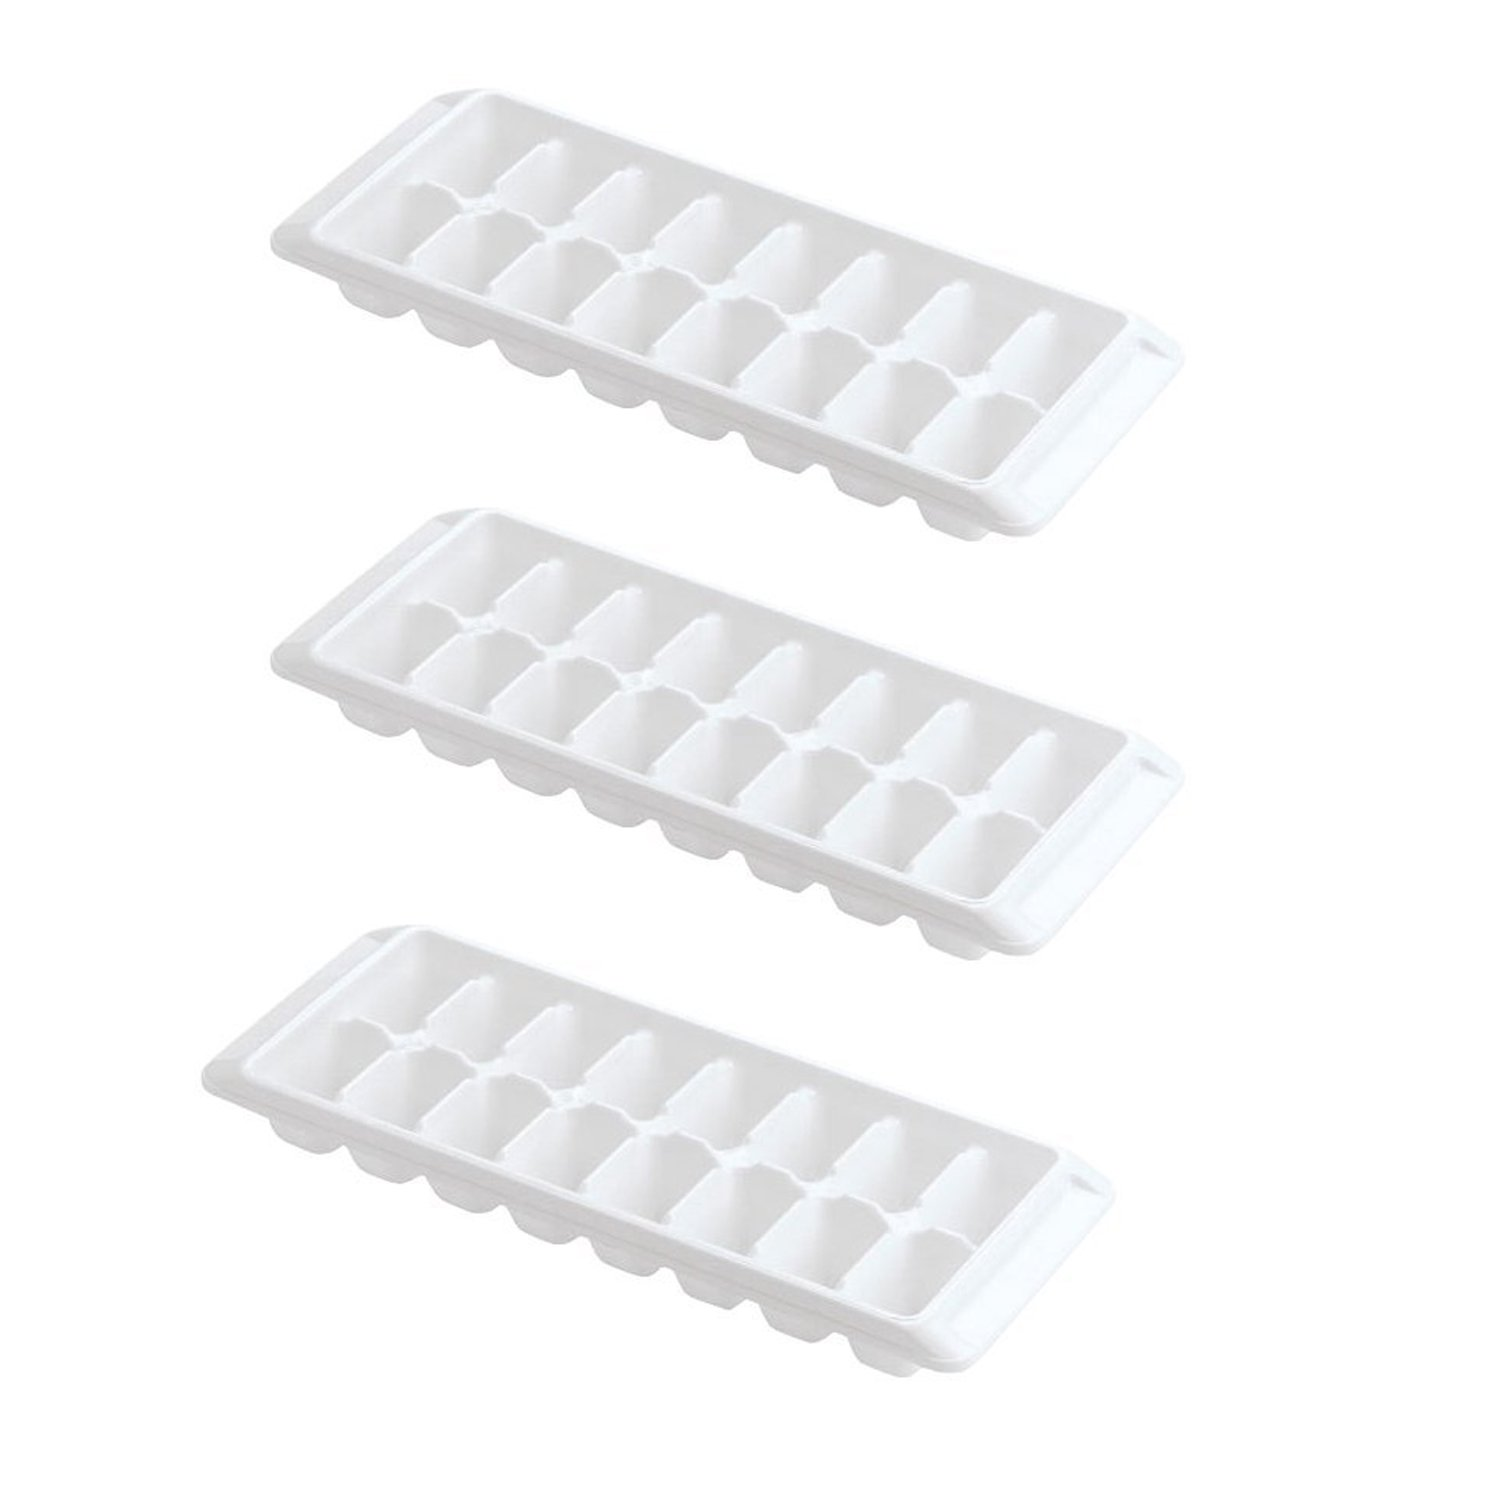 Rubbermaid - Ice Cube Tray, 16 cube trays (3 Pack, White)